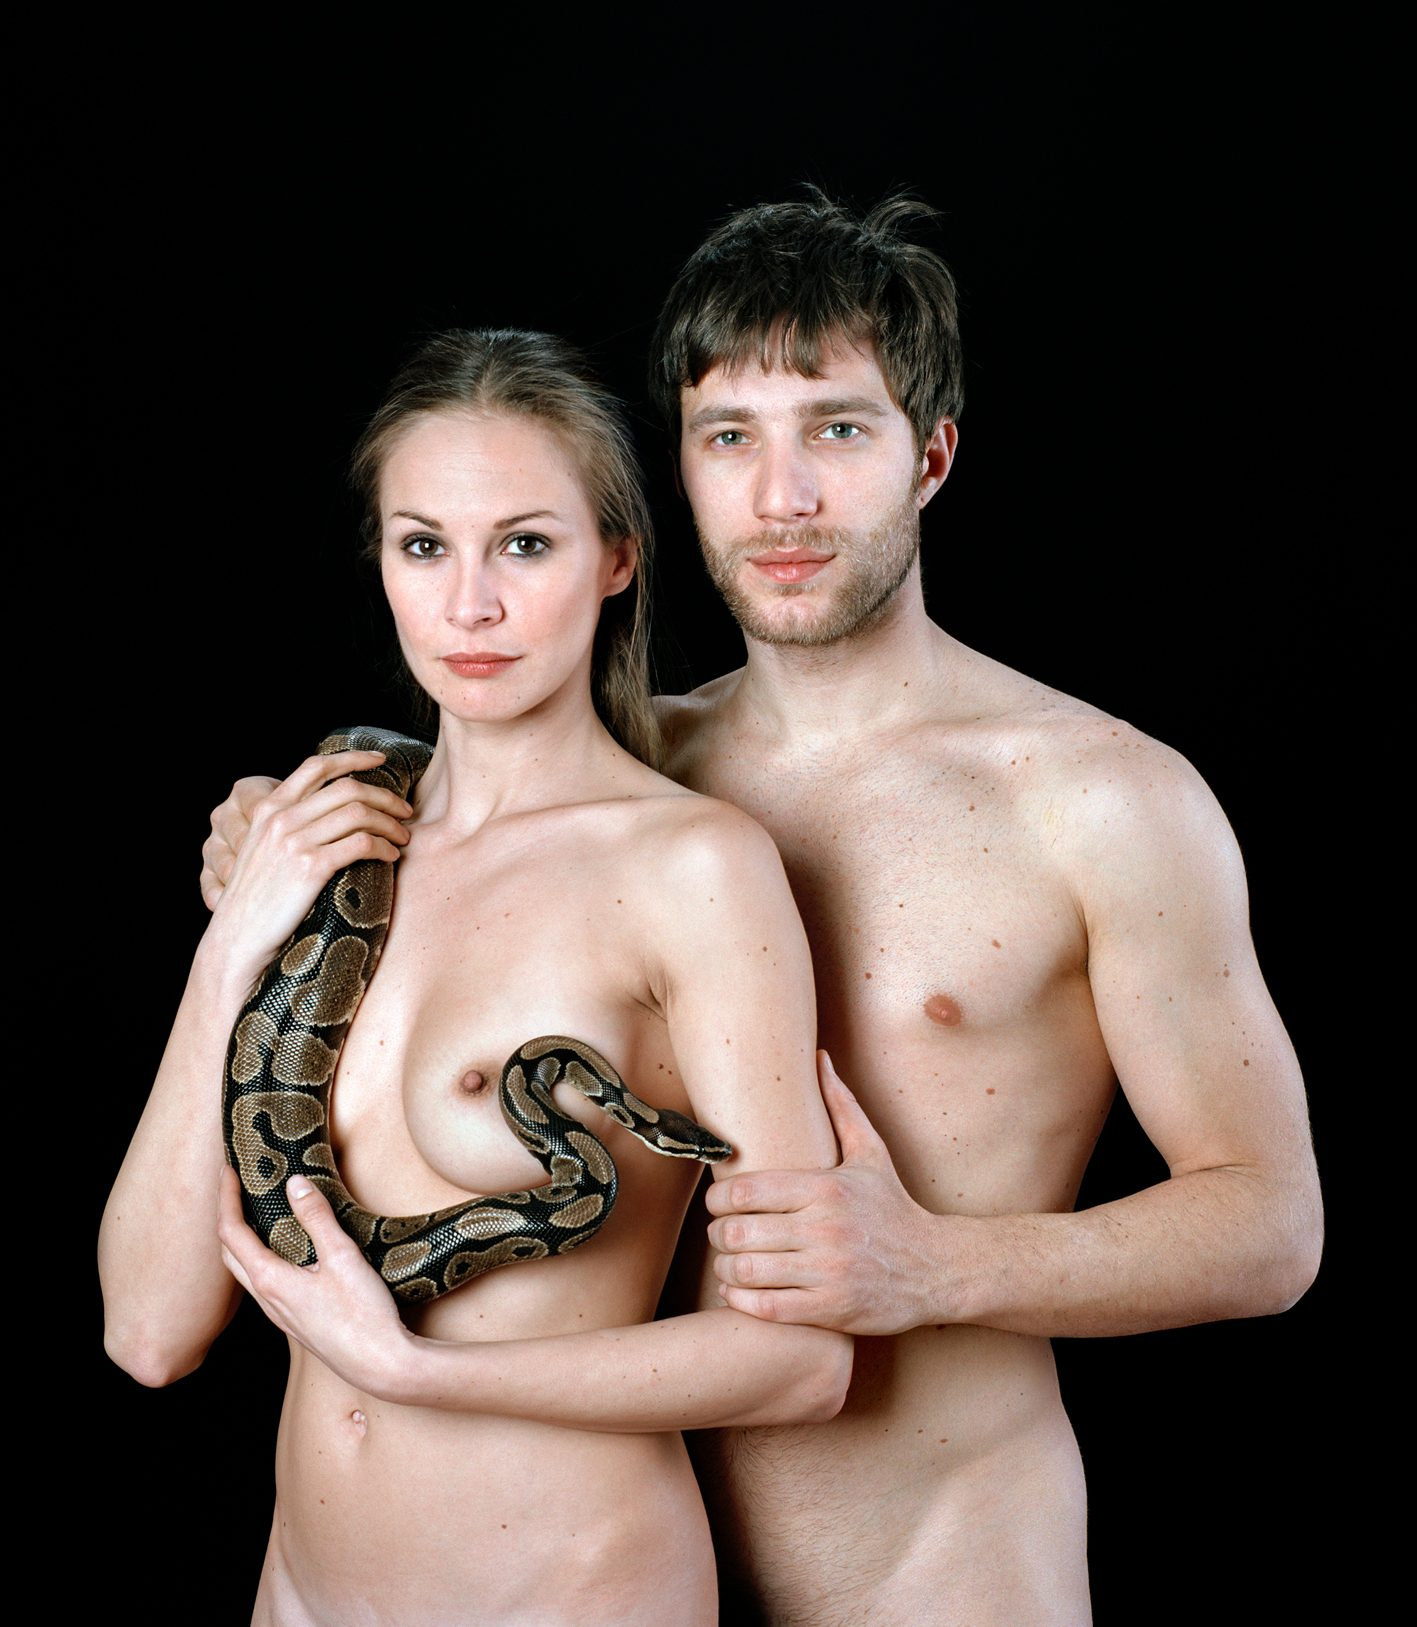 Untitled, For a Definition of The Nude Series (Couple w/ Snake)